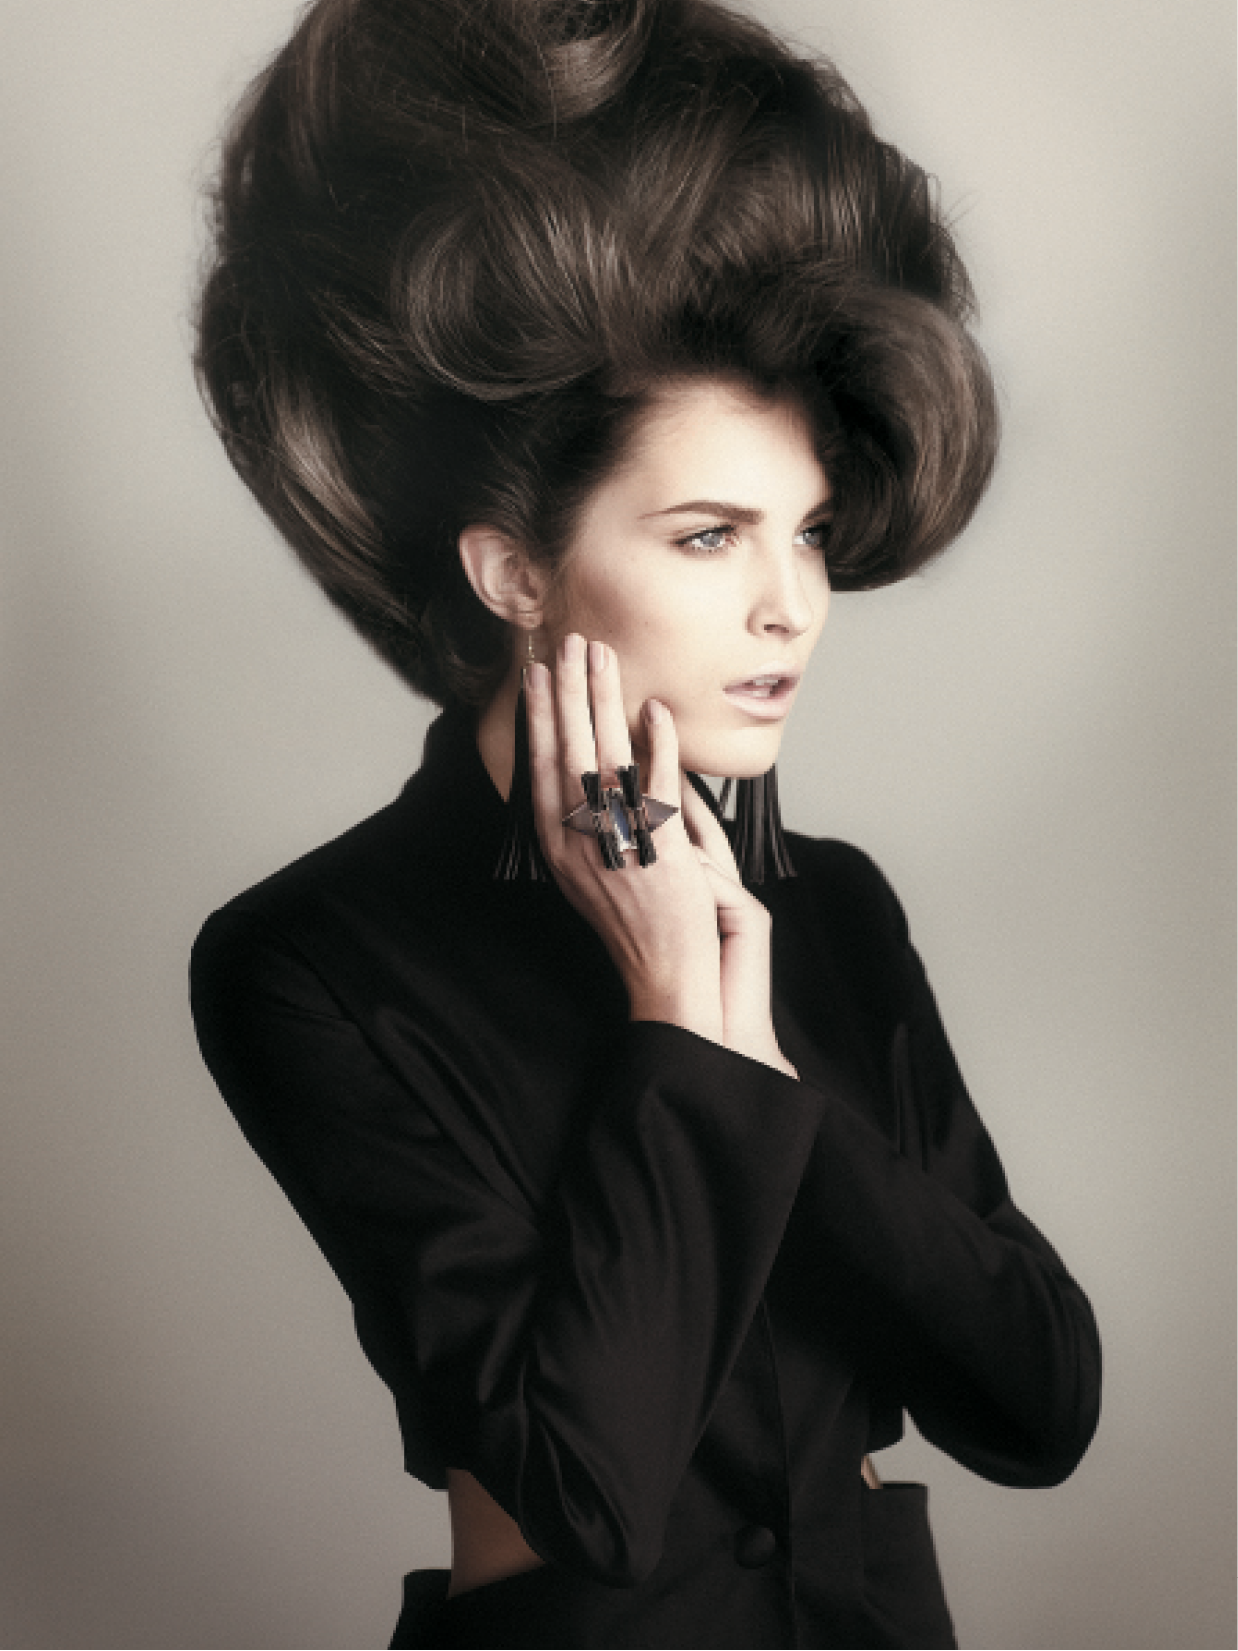 For this voluminous shape, Jo Smith took sections around the crown in a large halo pattern down to the occipital. To achieve a beehive height, she placed a large polystyrene ball with a smaller ball on top at the peak of the head and wrapped hair around and into a large French roll.